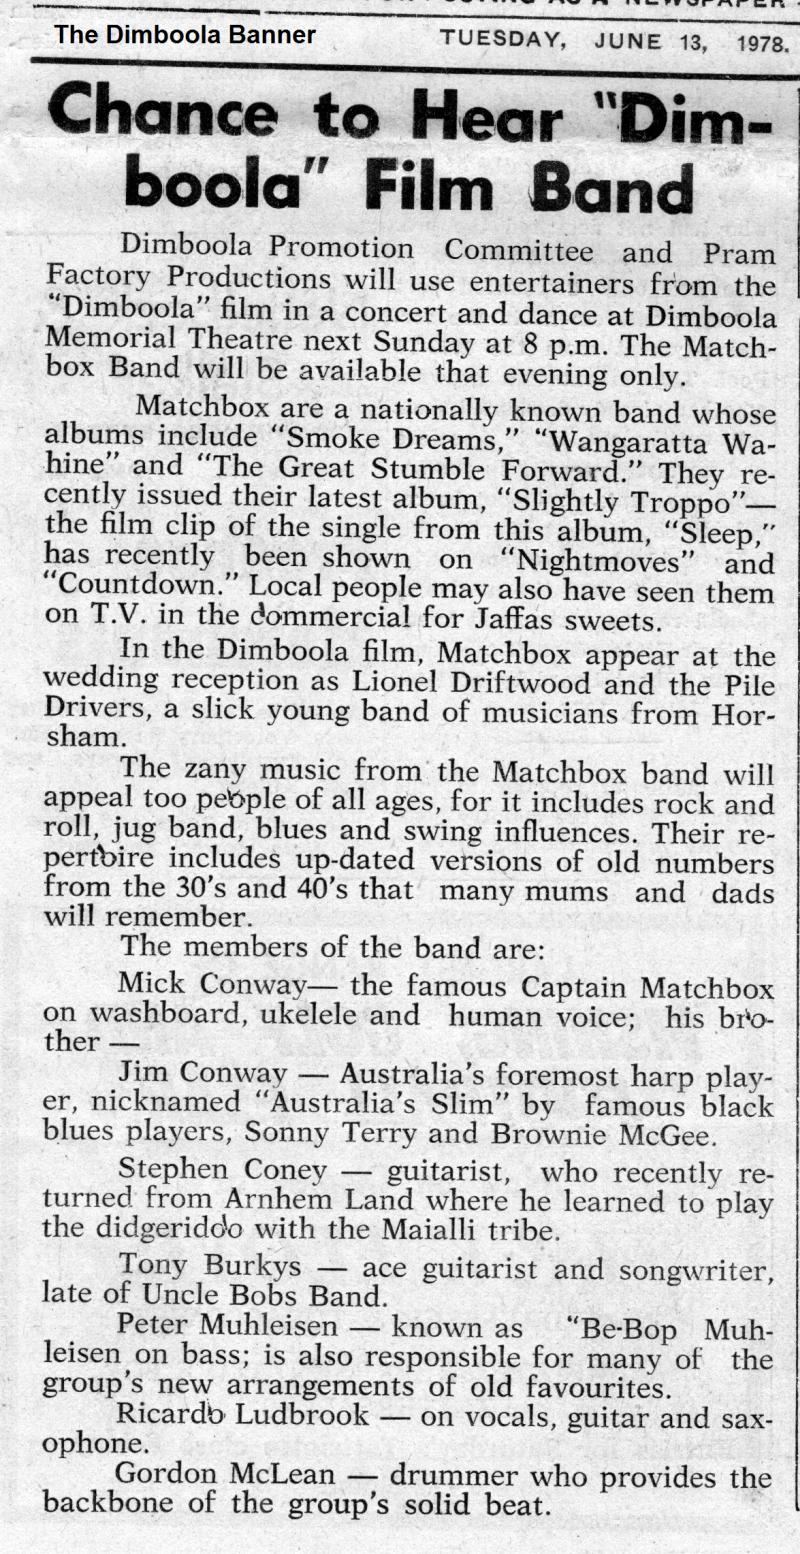 Film band article